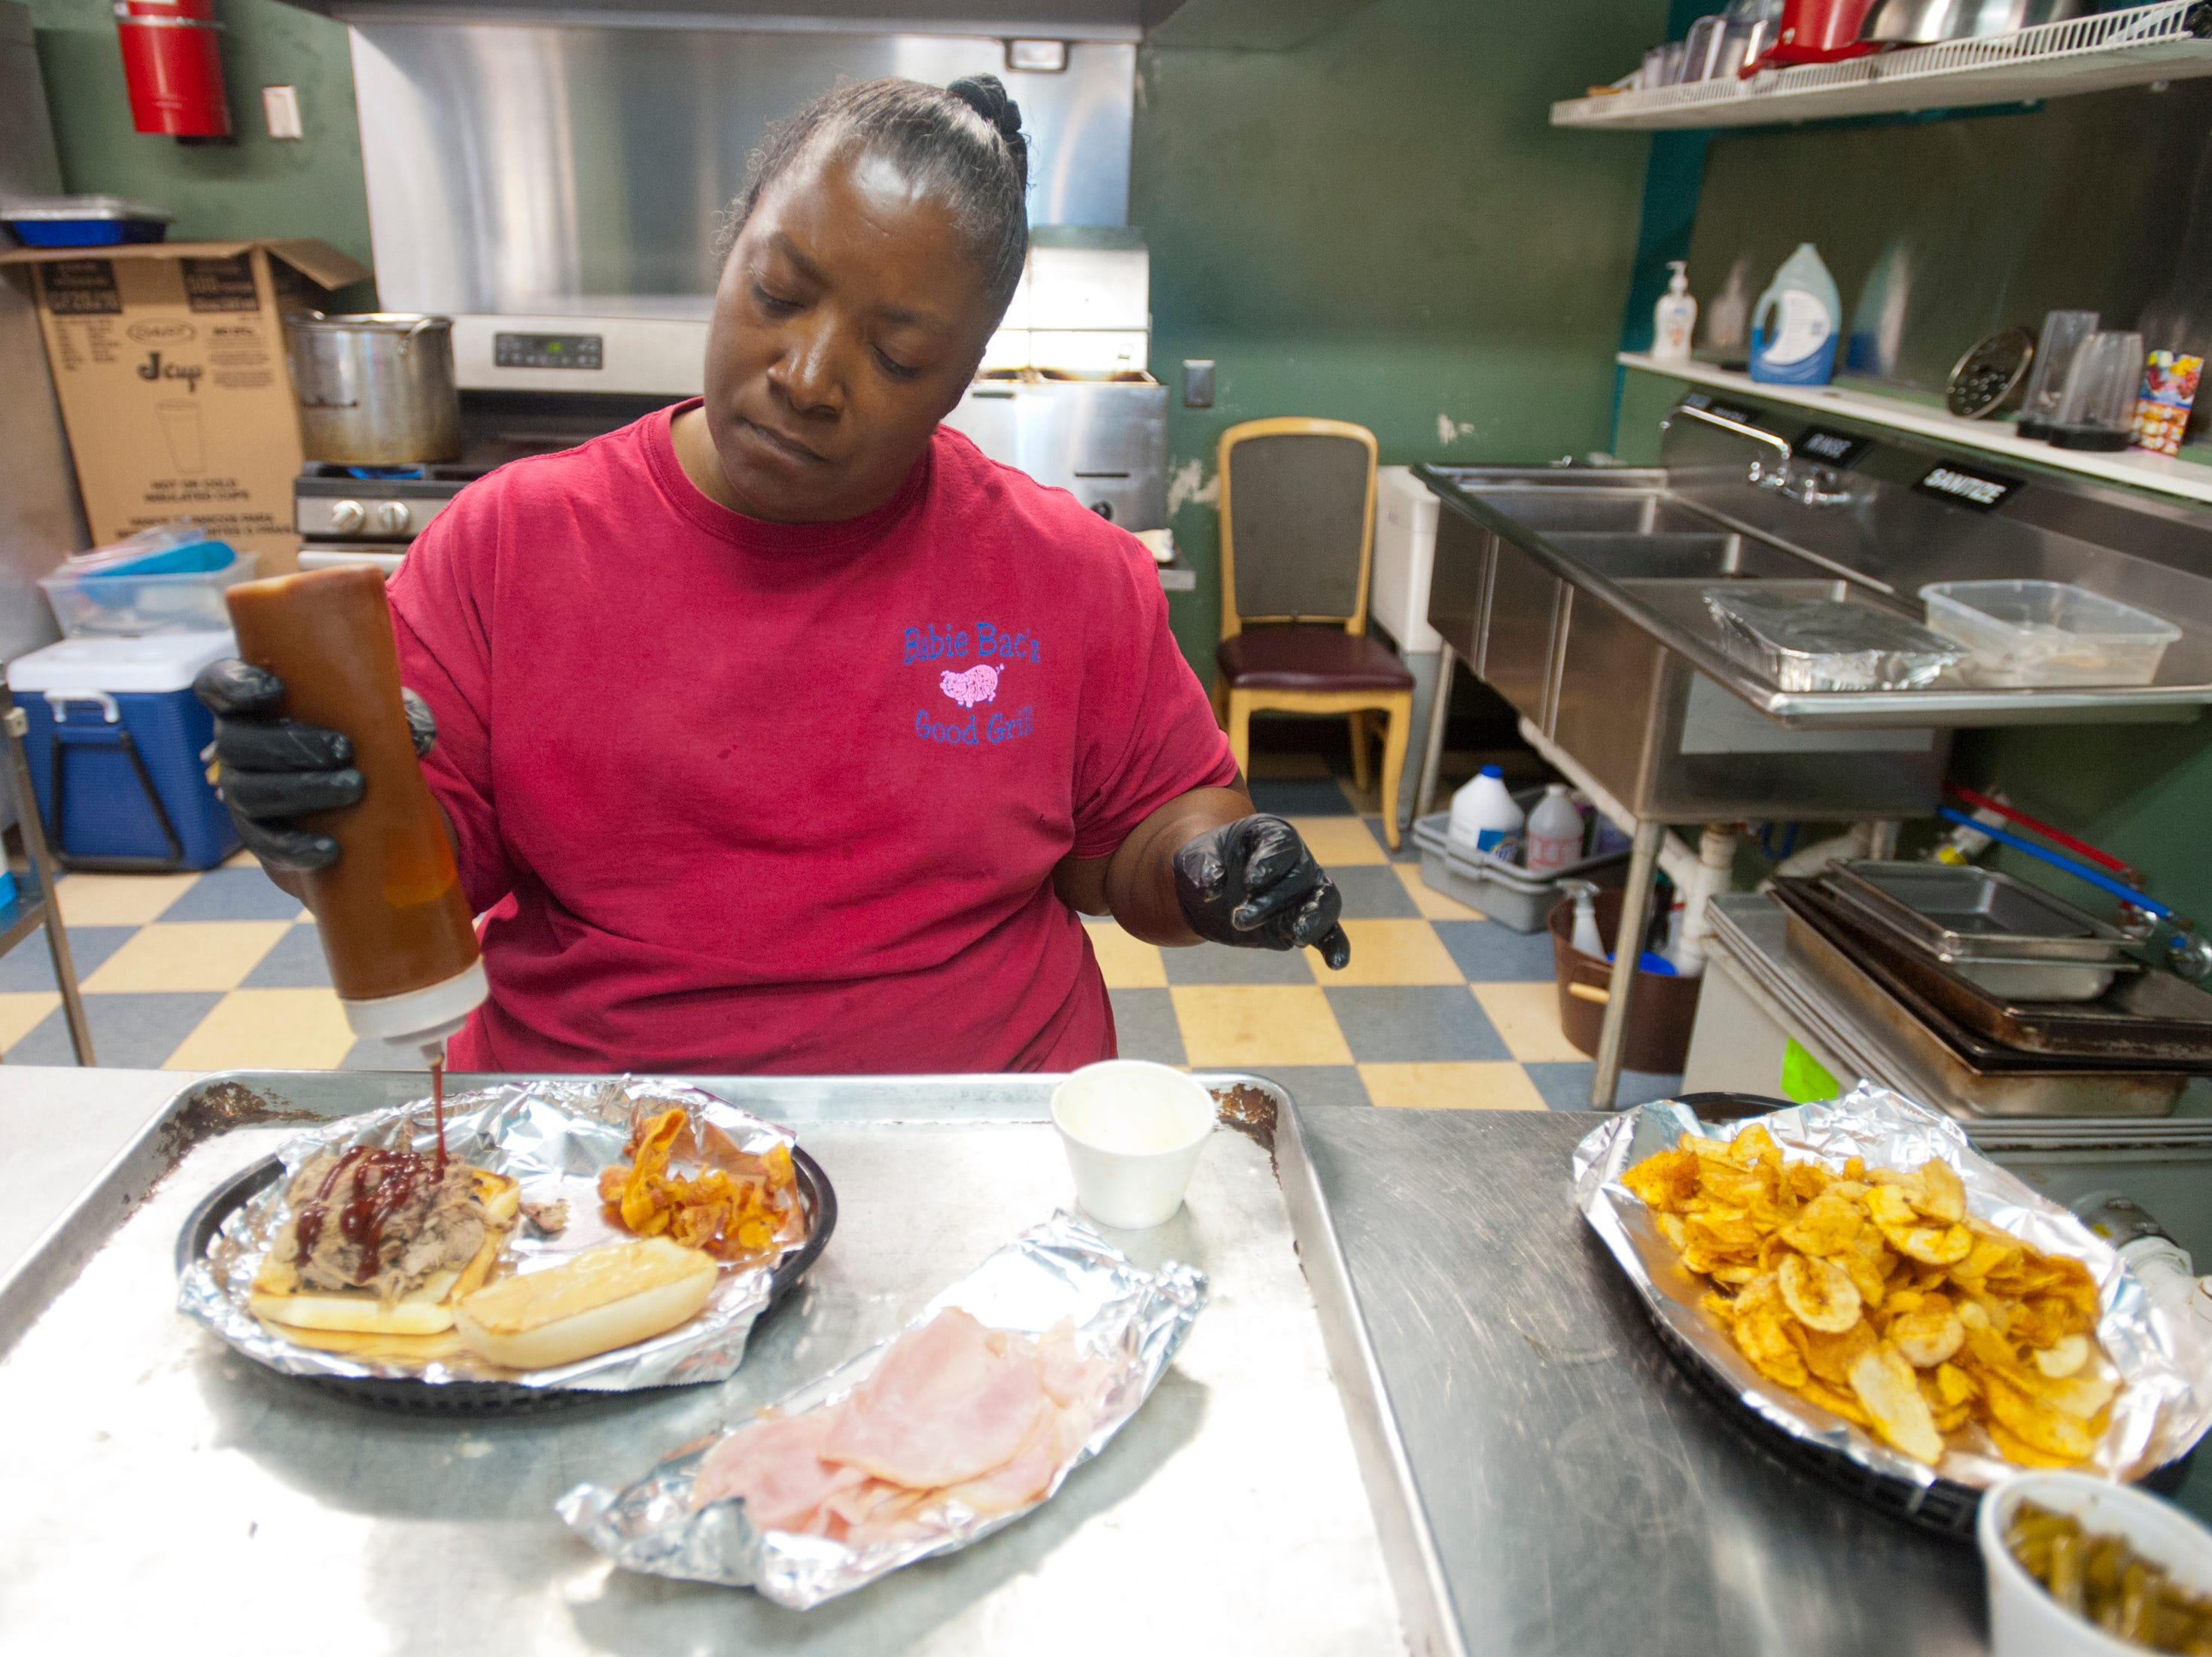 Babie Bac'z Good Grill co-owner Lydia Russell squirts some of the restaurant's original barbecue sauce on the eatery's Bac'z Attack sandwich made with deep fried smoked bacon and pulled pork on a chiabbata bun.